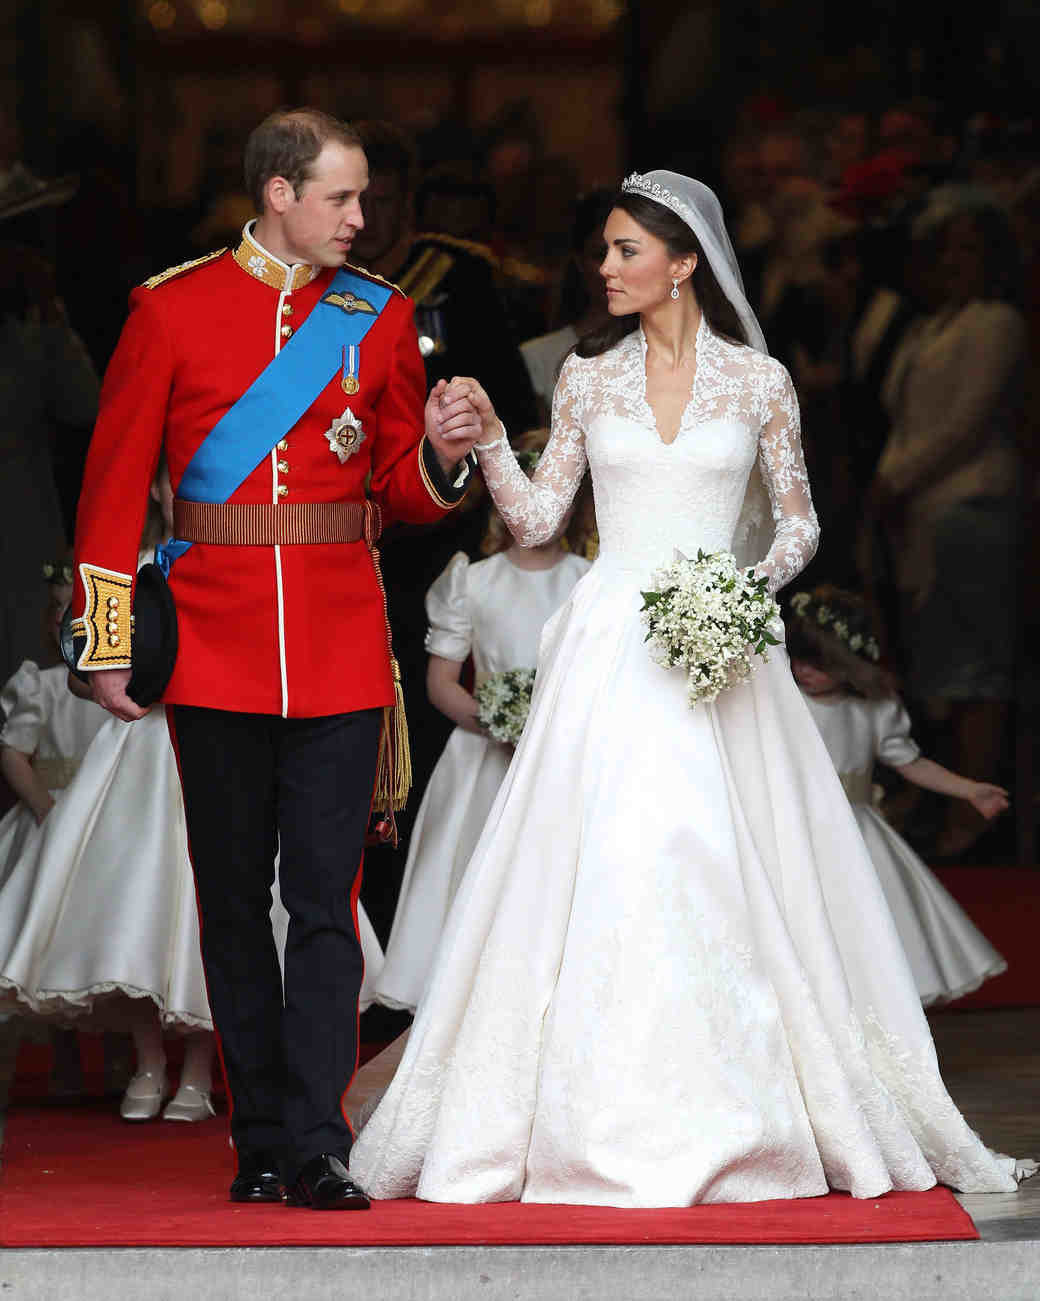 An image of a royal bride and groom holding hands.